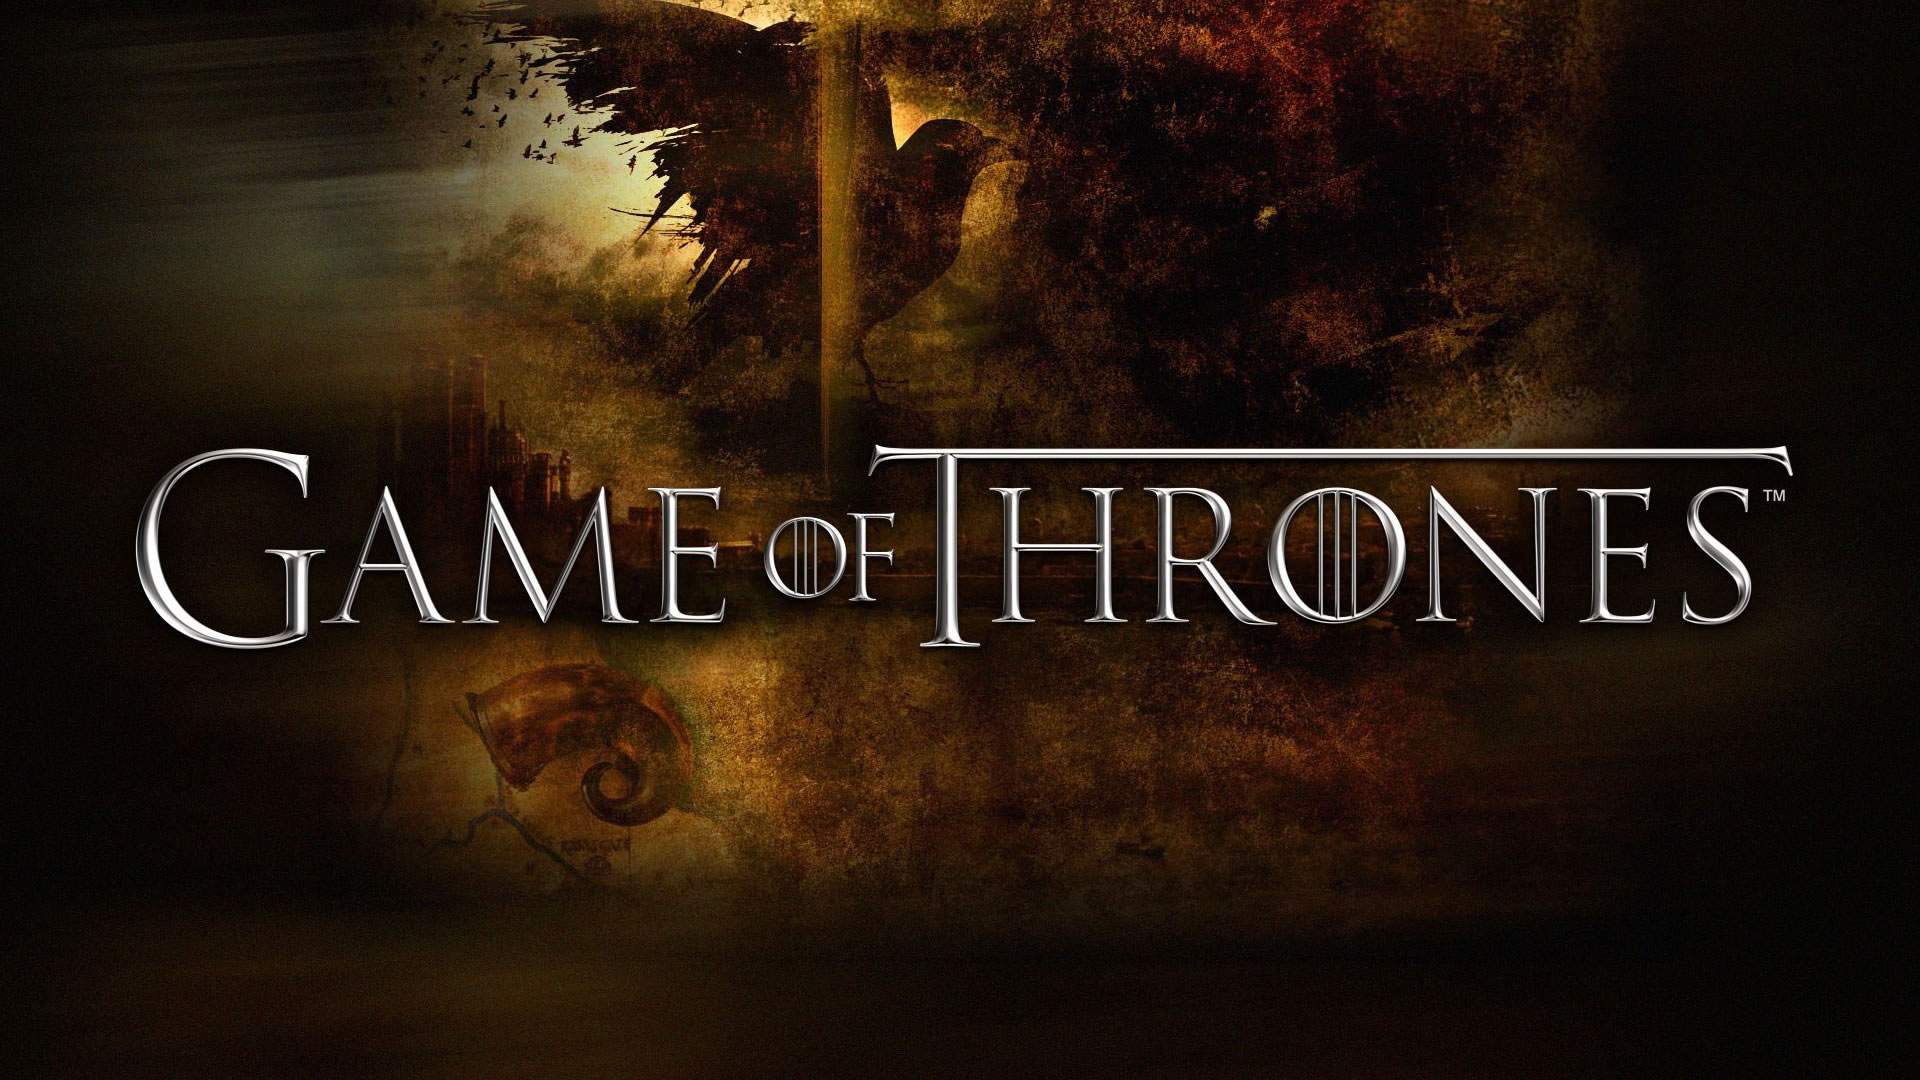 Check out these Game of Thrones Windows 10 Wallpapers